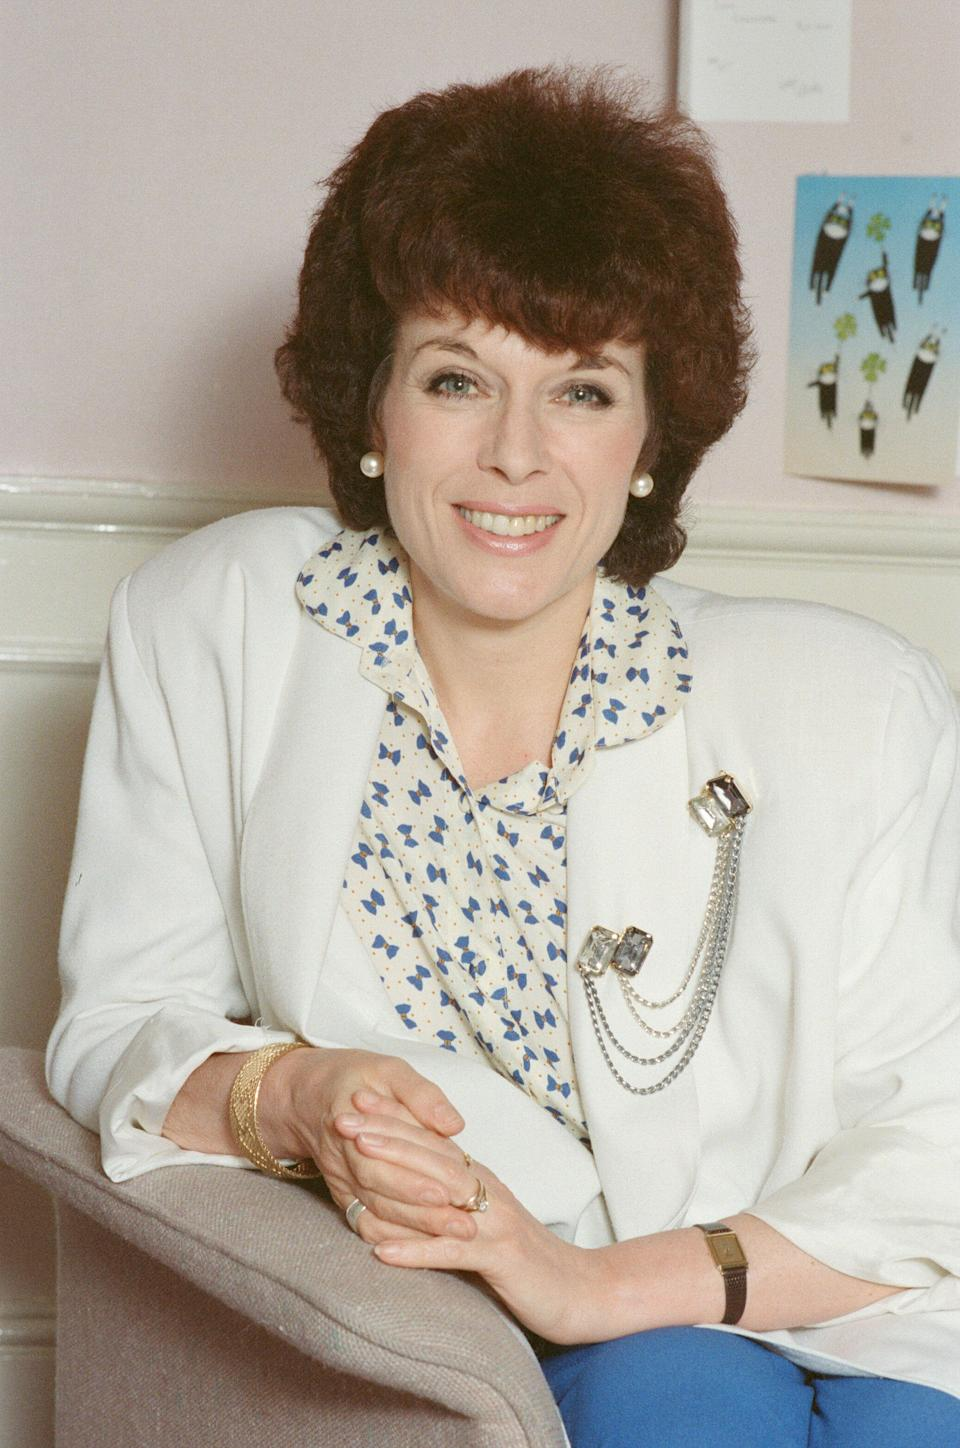 <strong>Jill Gascoine (1937 - 2020)<br /><br /></strong>The TV actress was best remembered for her role as Detective Inspector Maggie Forbes in the hit 80s series The Gentle Touch. She died four years after being moved into a specialist care home for people who have advanced Alzheimer's disease.